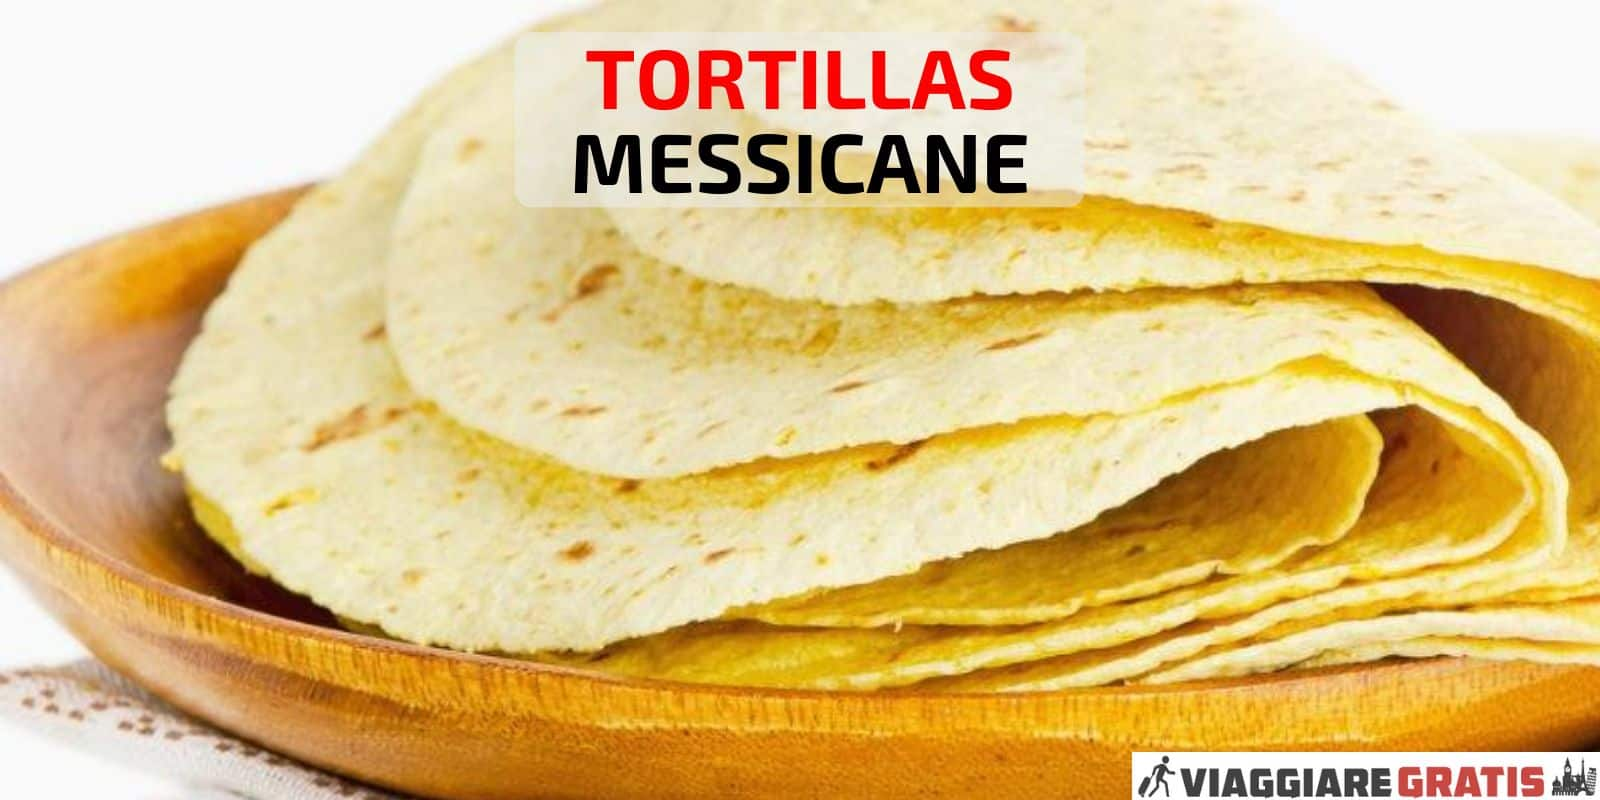 Tortillas messicane di mais originali